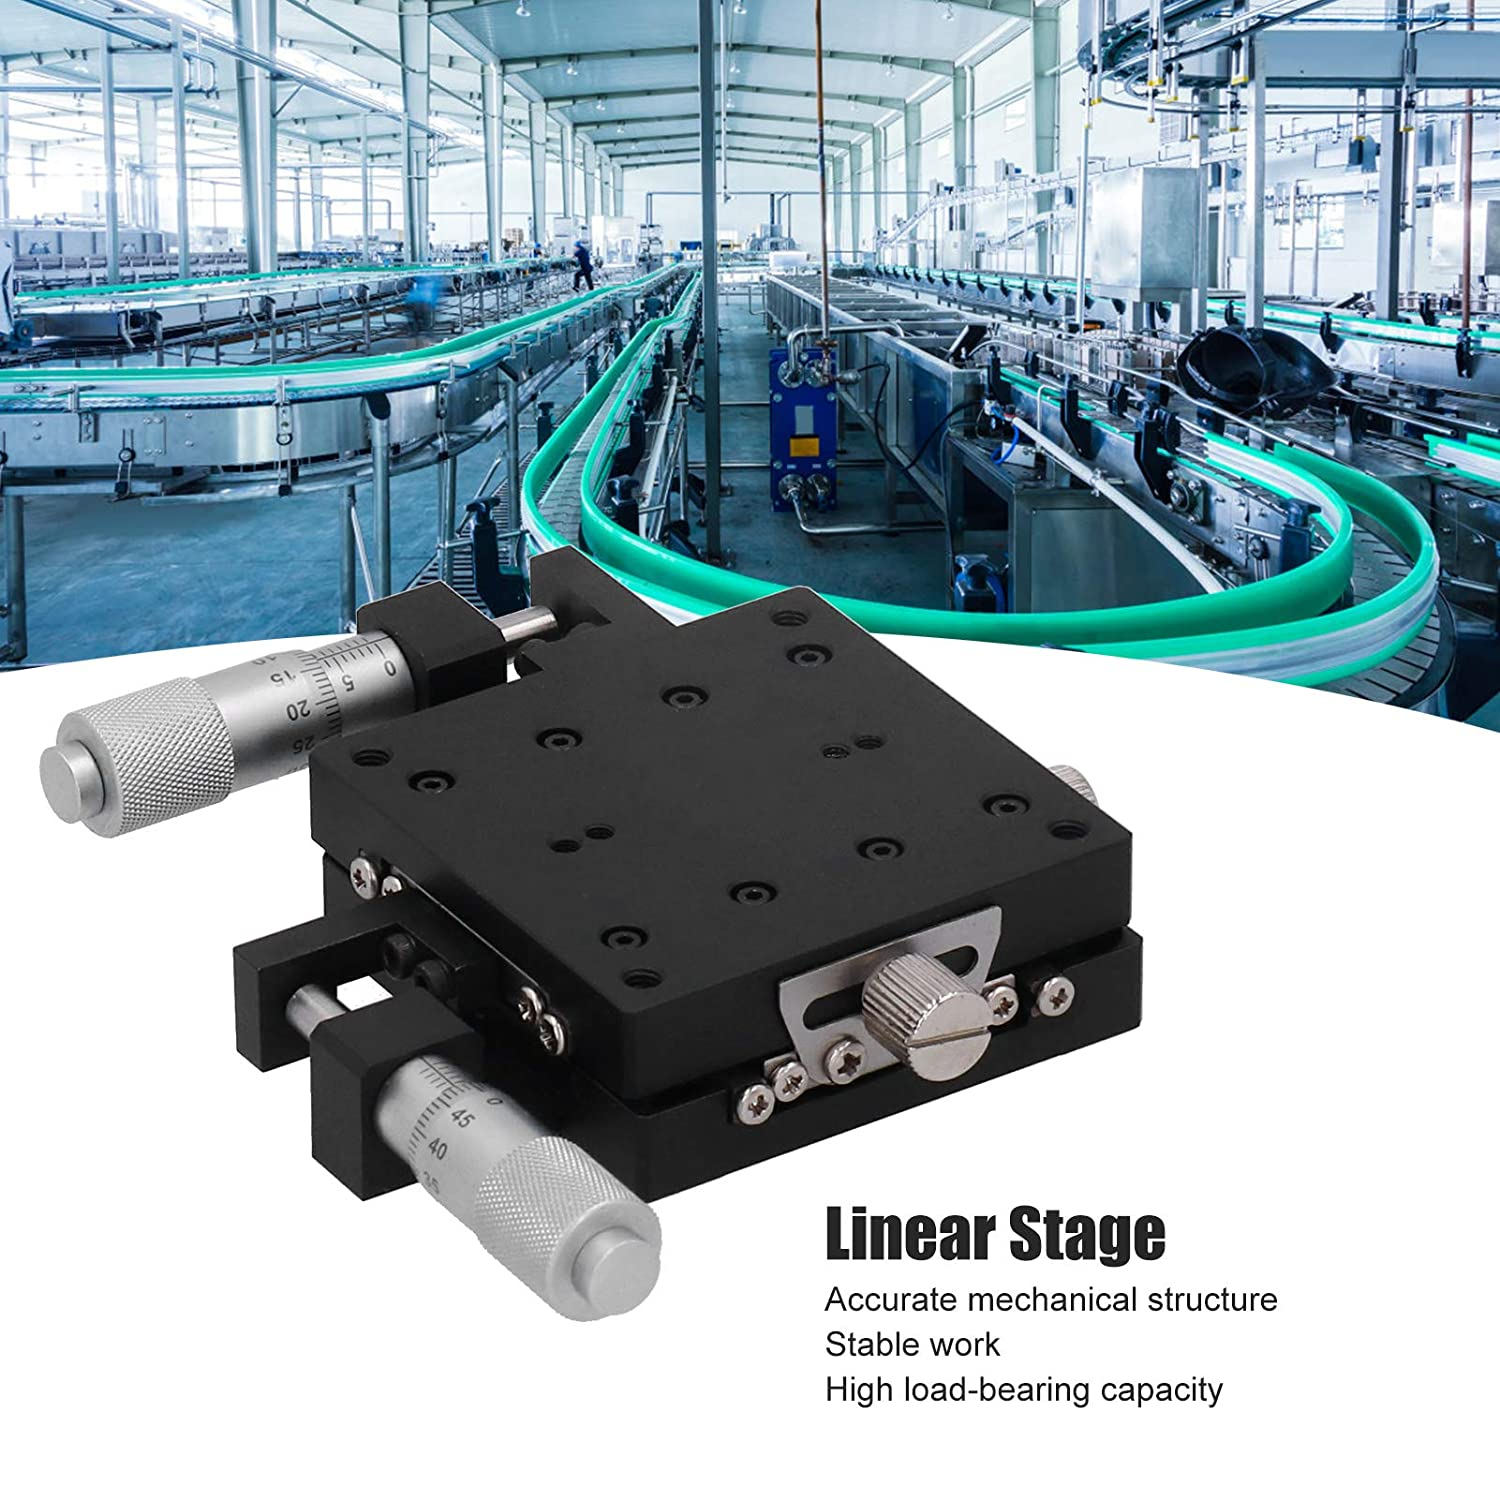 SEMYW60‑AS Linear Sliding Table XY Axis Manual Platform Cross Roller Guide Type Stage 60x60mm